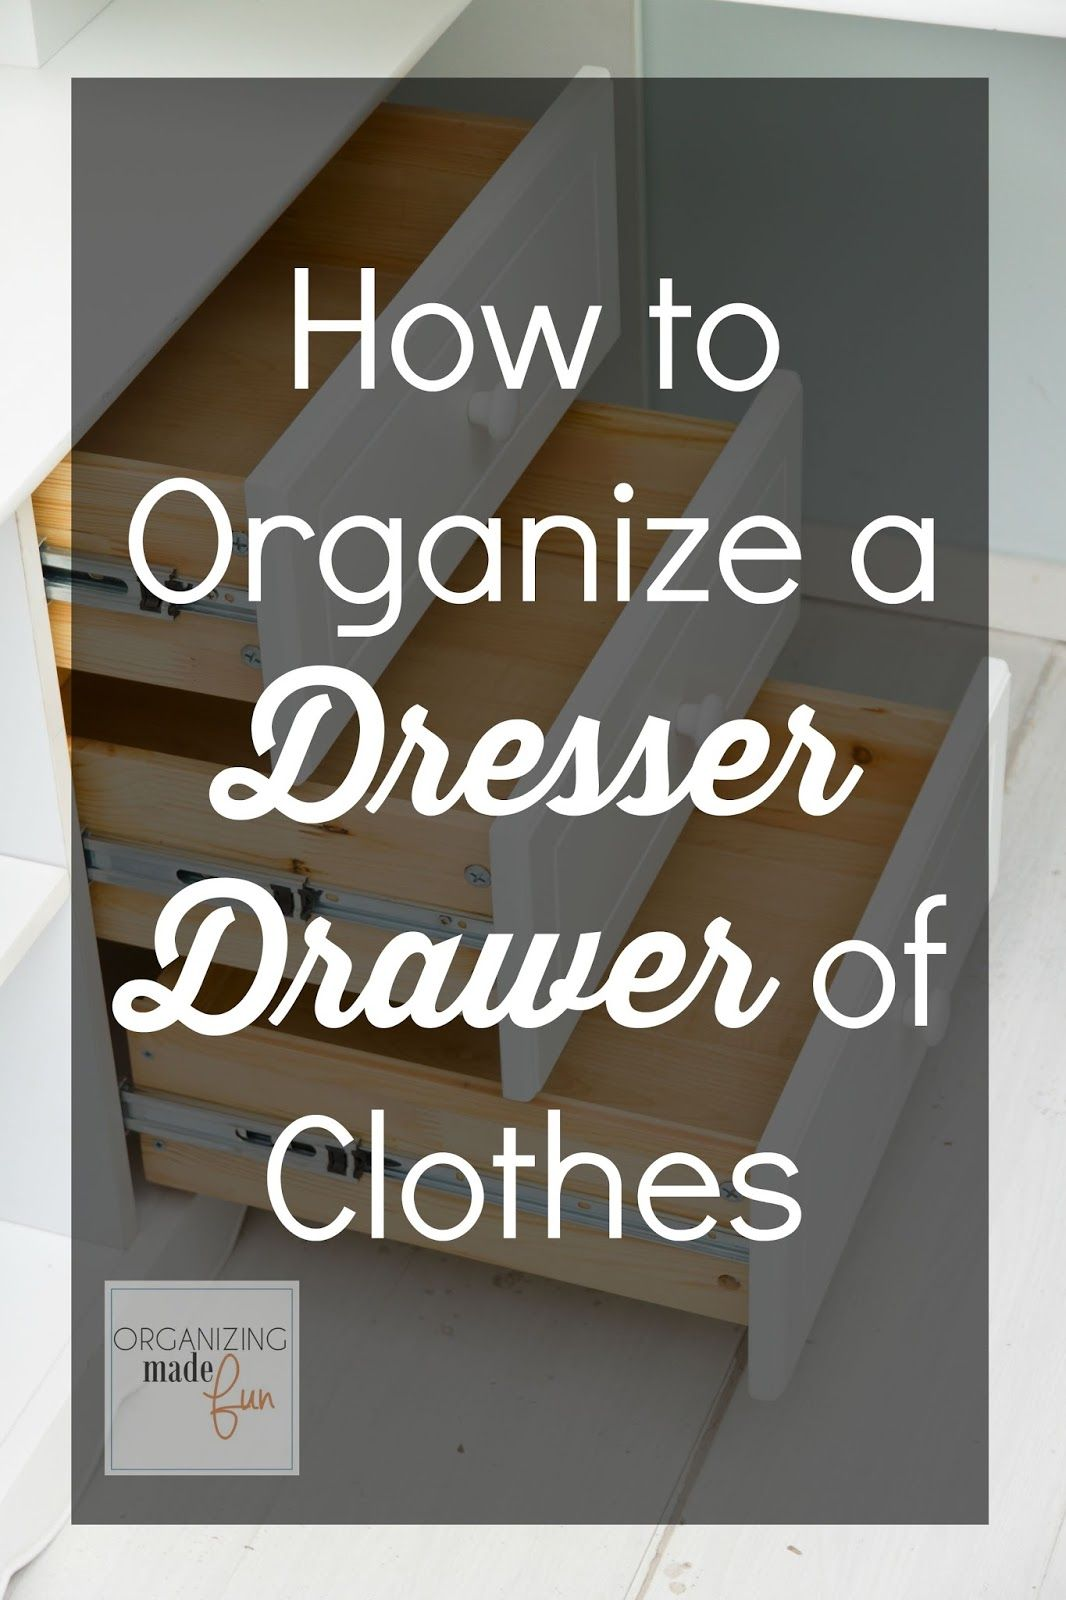 How To Organize A Dresser Drawer Of Clothes: Ideas, Tips, And Inspiration  To · Bedroom ...